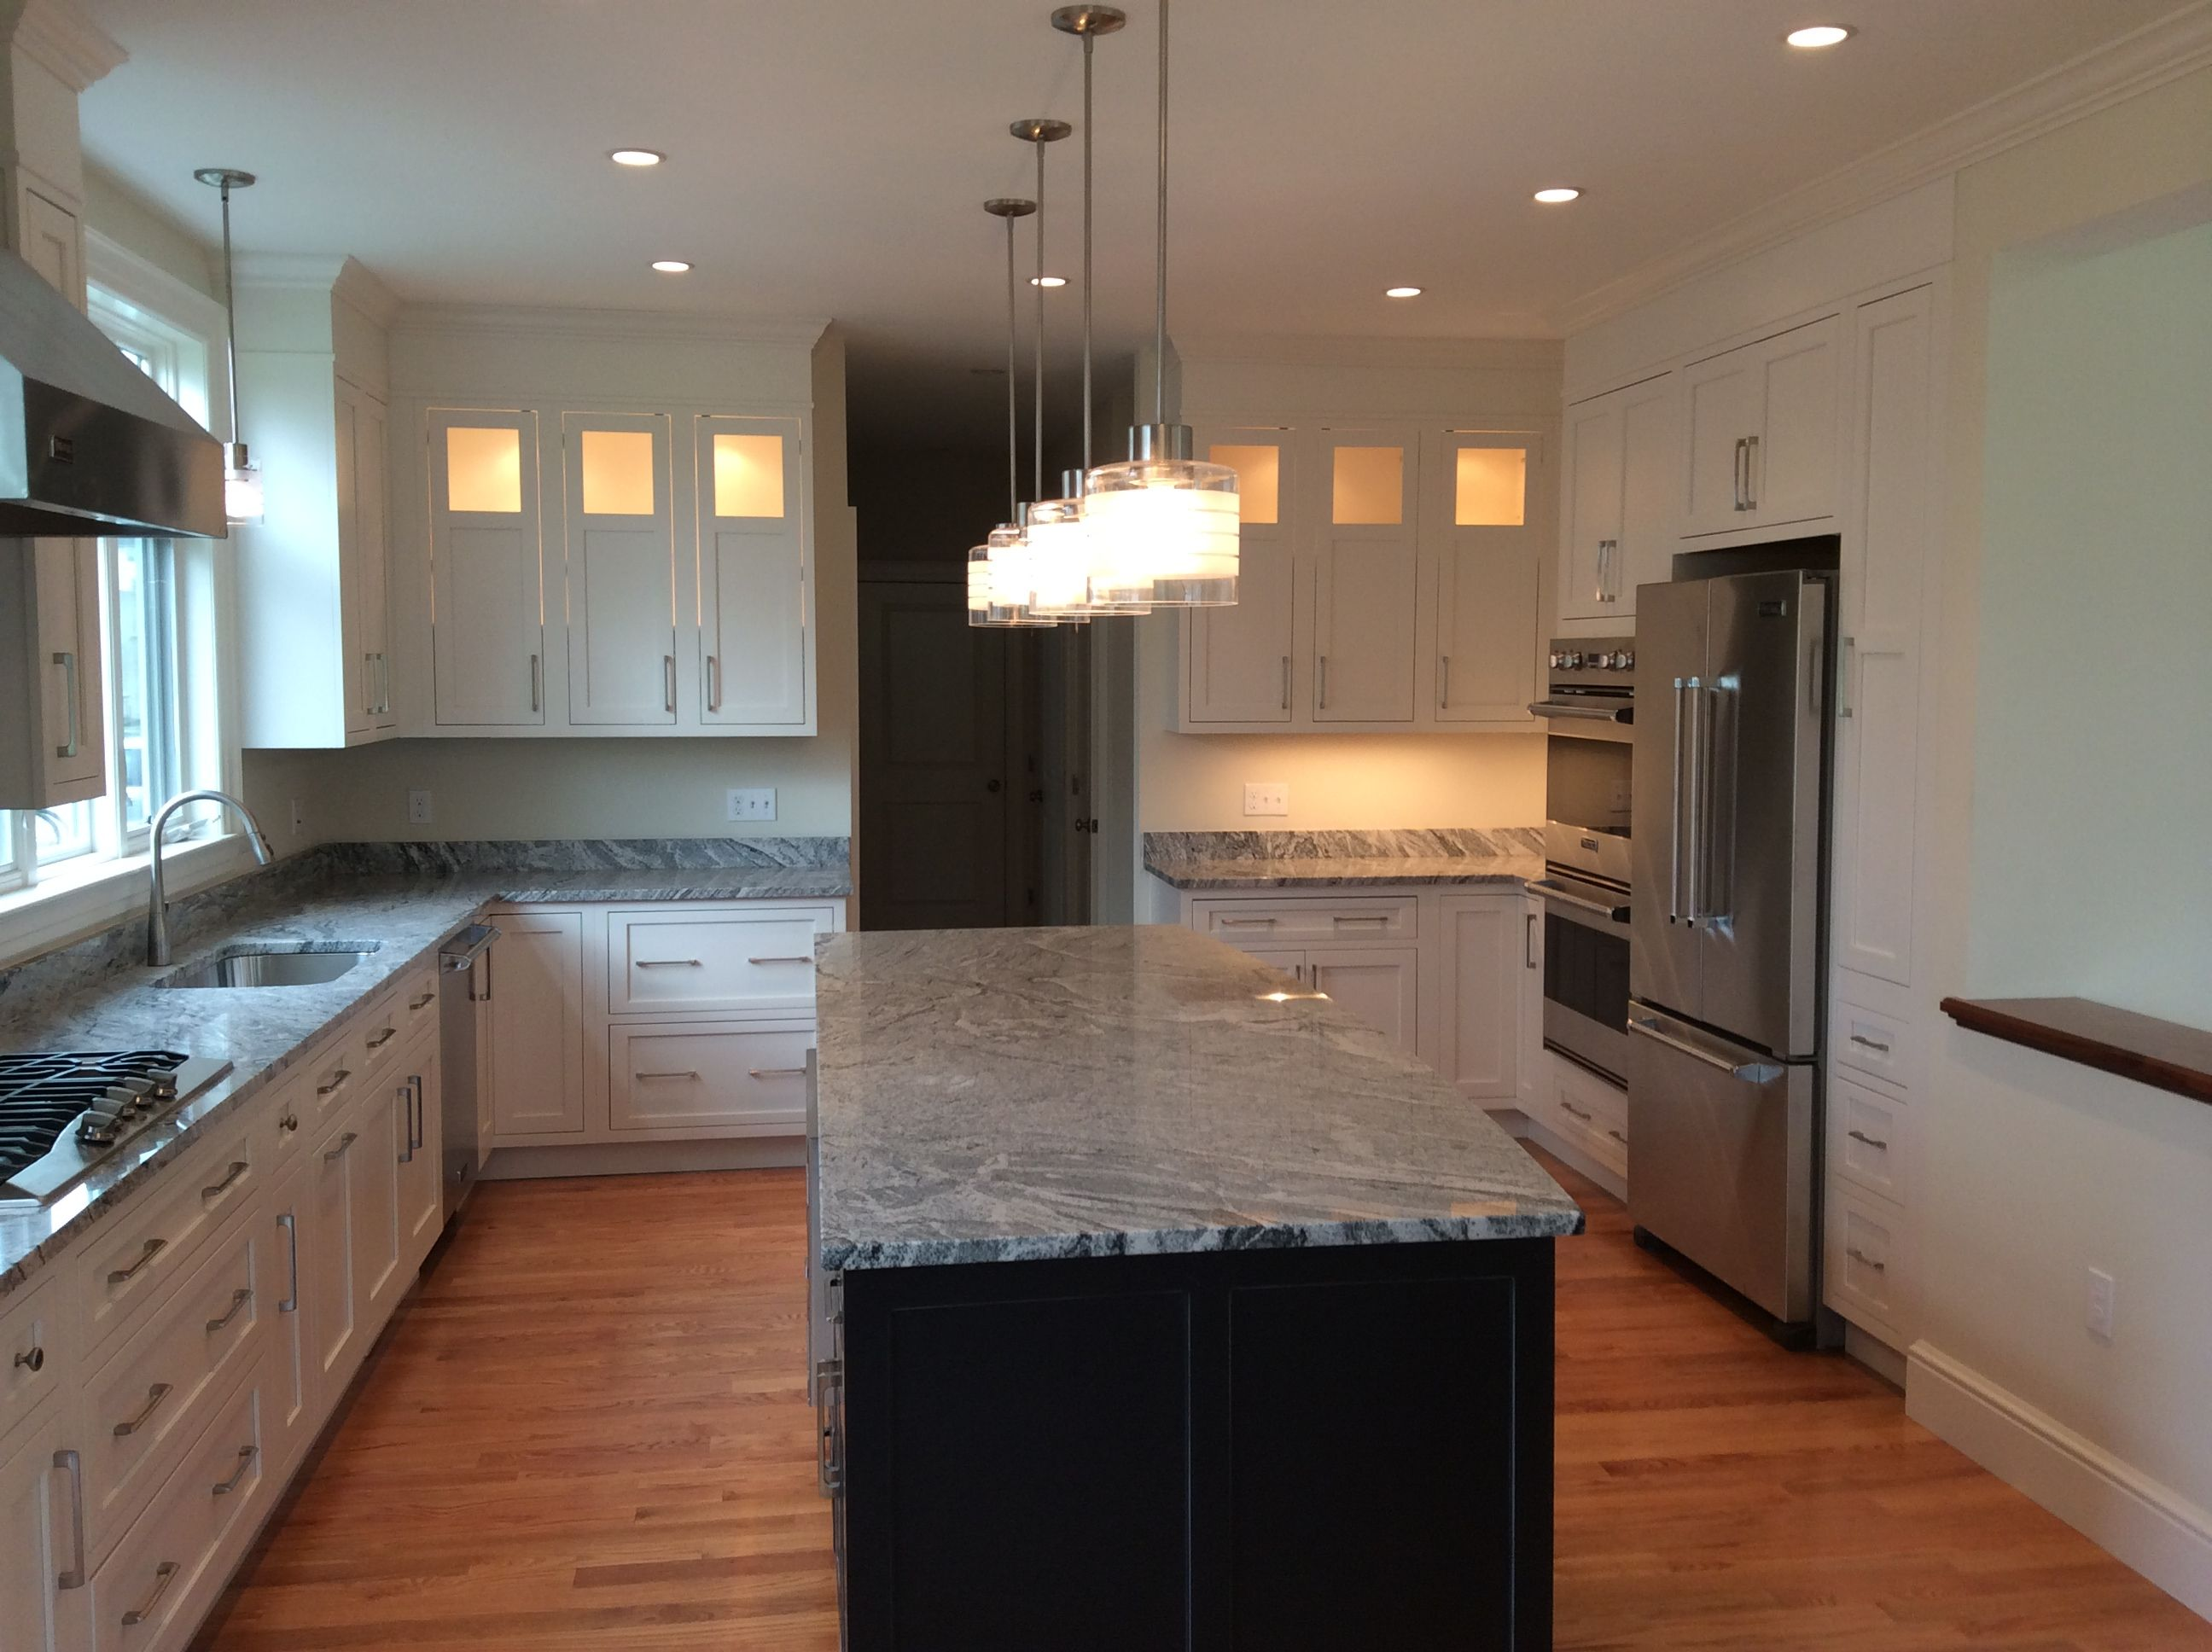 New Construction Kitchen In Sherborn Massachusetts Designed By Matthew Desmond With Oceanside Cabinets In Marblehead Mass Kitchen Remodel Cabinetry Kitchen